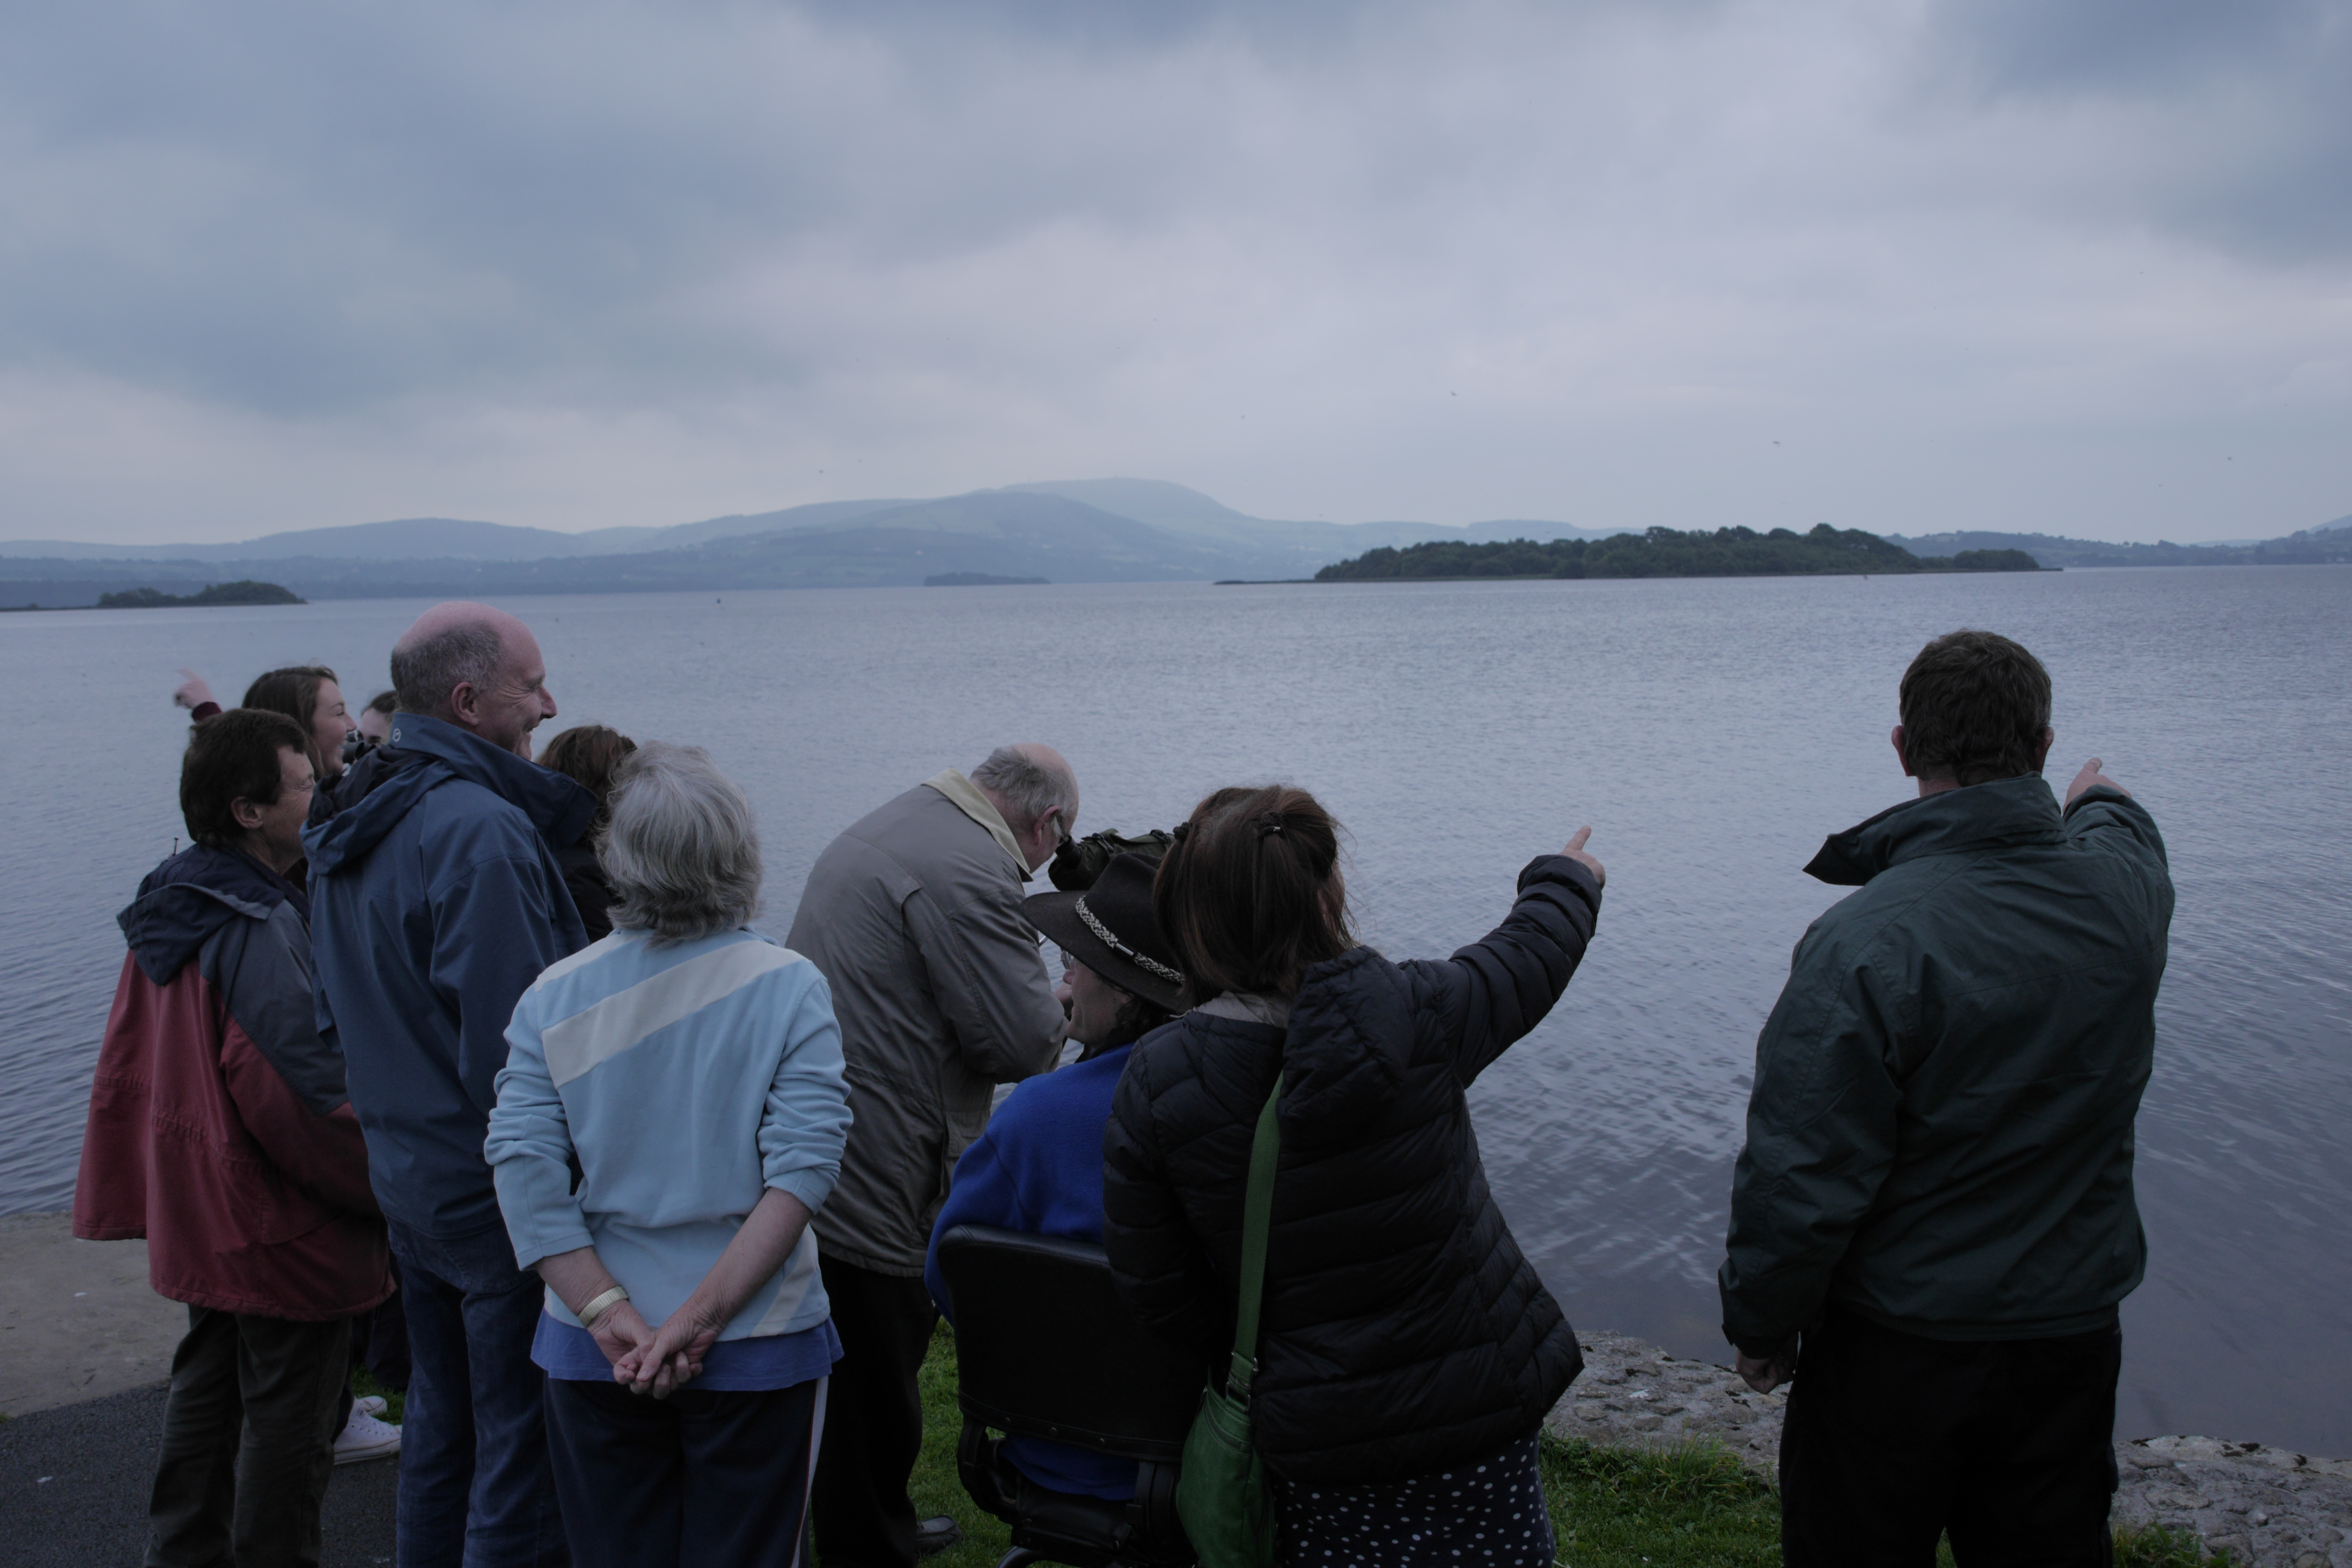 Members of the public who participated in the recent Lough Derg Heritage Trail event. Photograph by Andrew Power